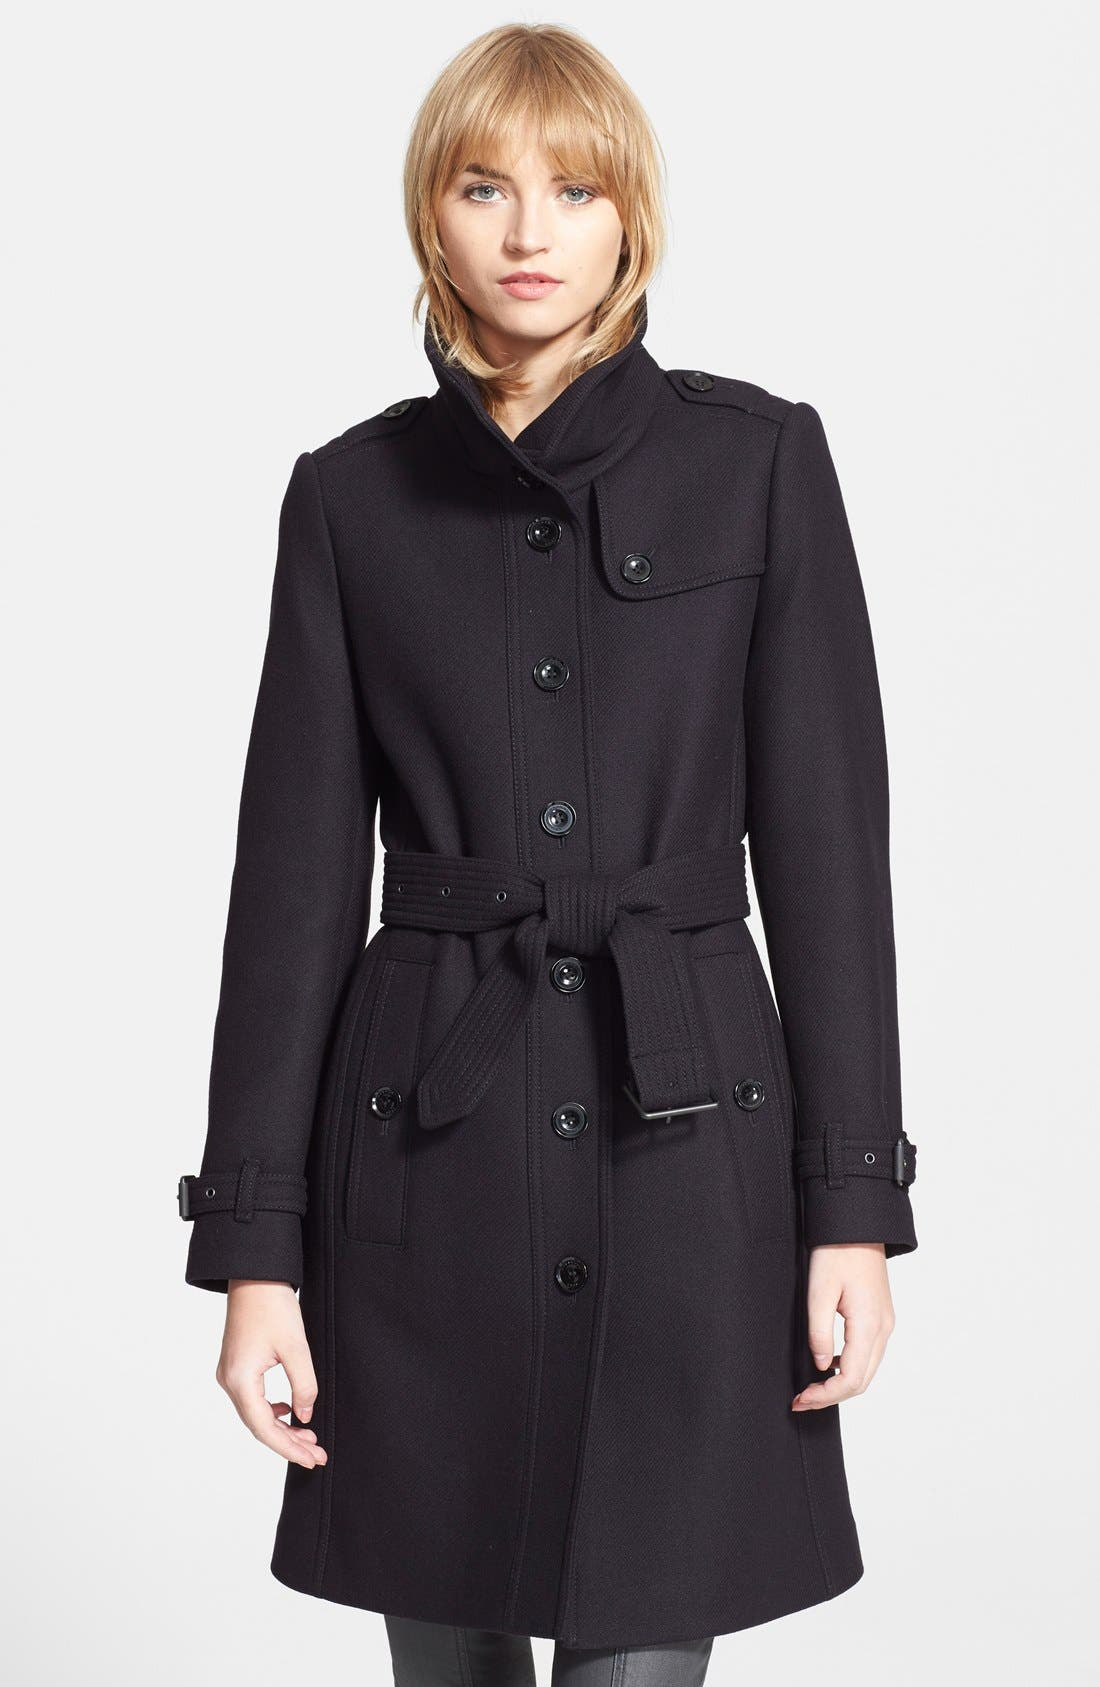 Alternate Image 1 Selected - Burberry Brit 'Rushfield' Wool Blend Stand Collar Coat